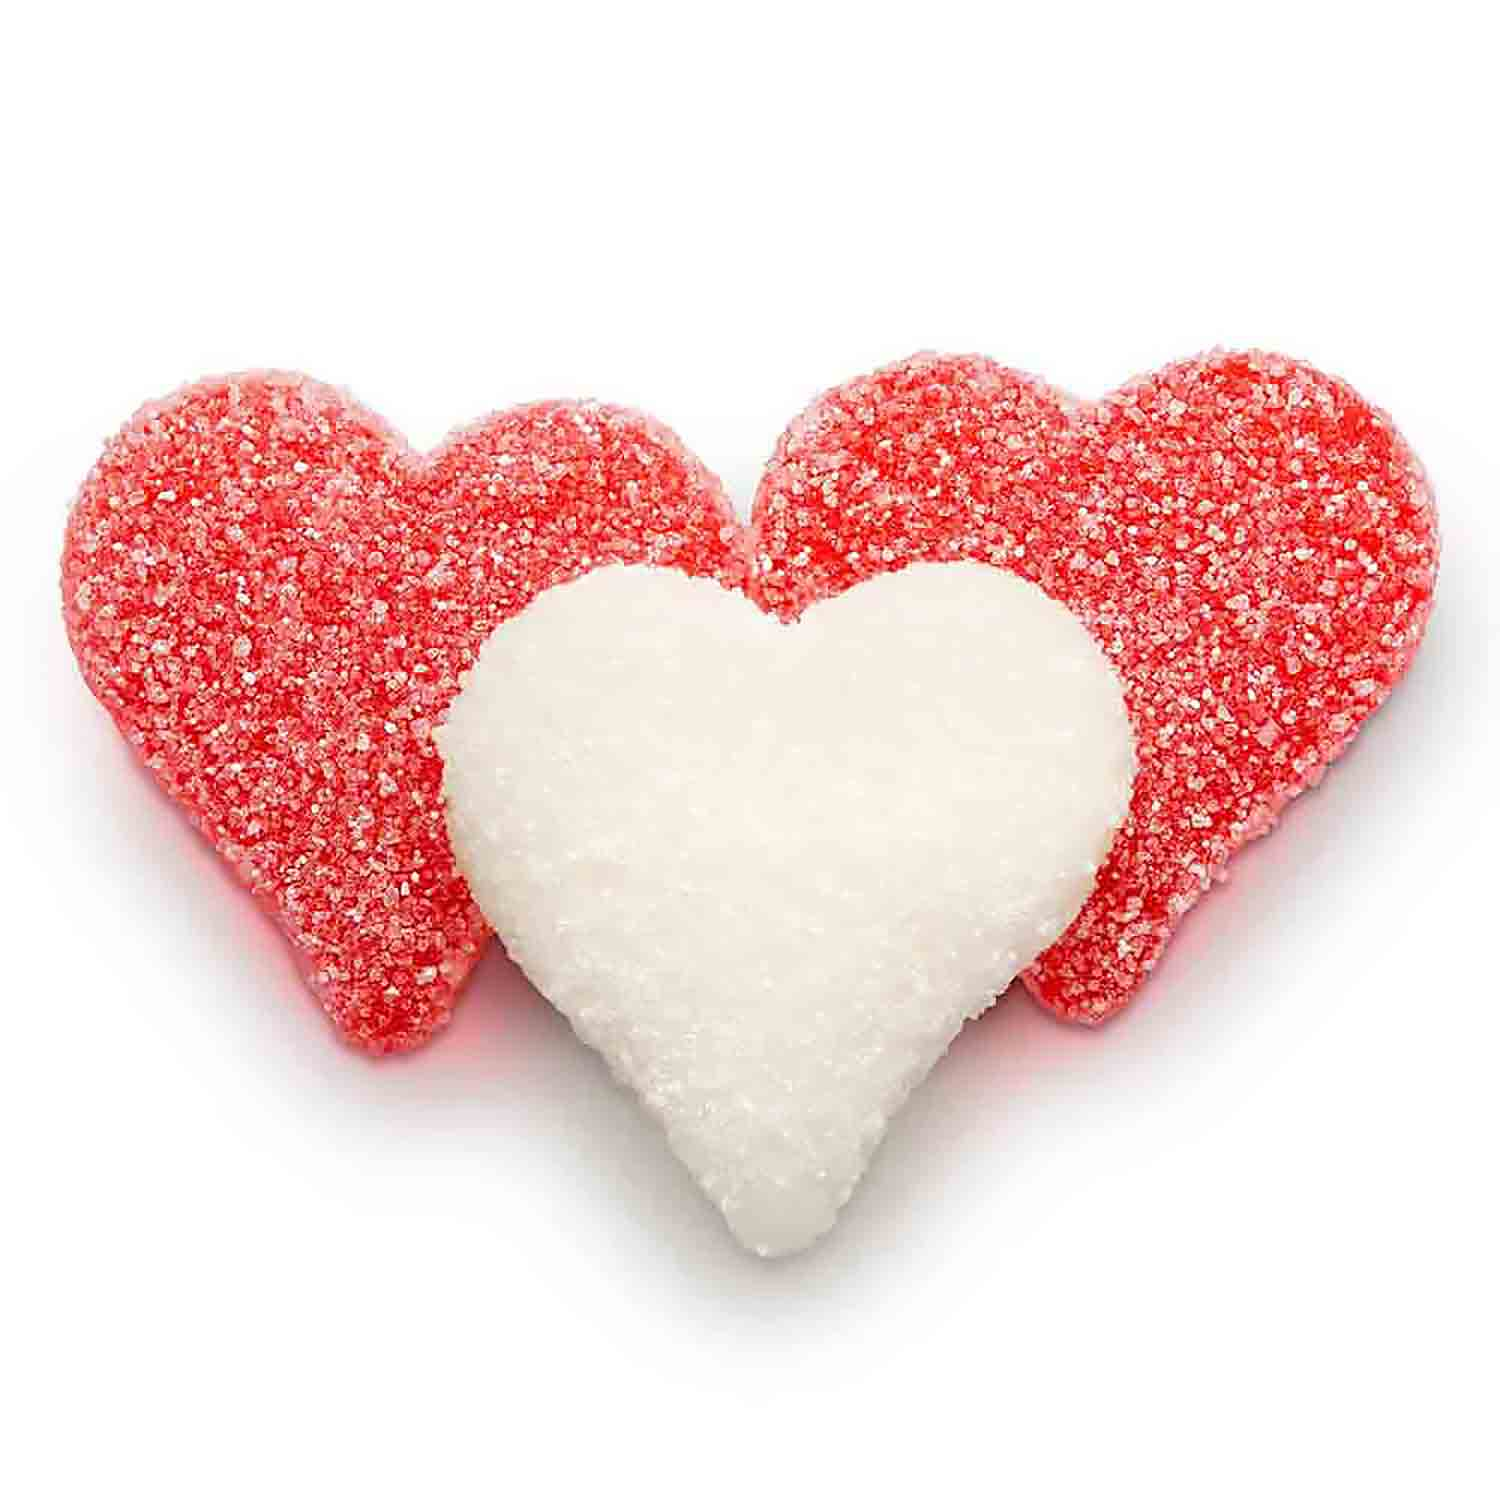 Sour Heart Gummies